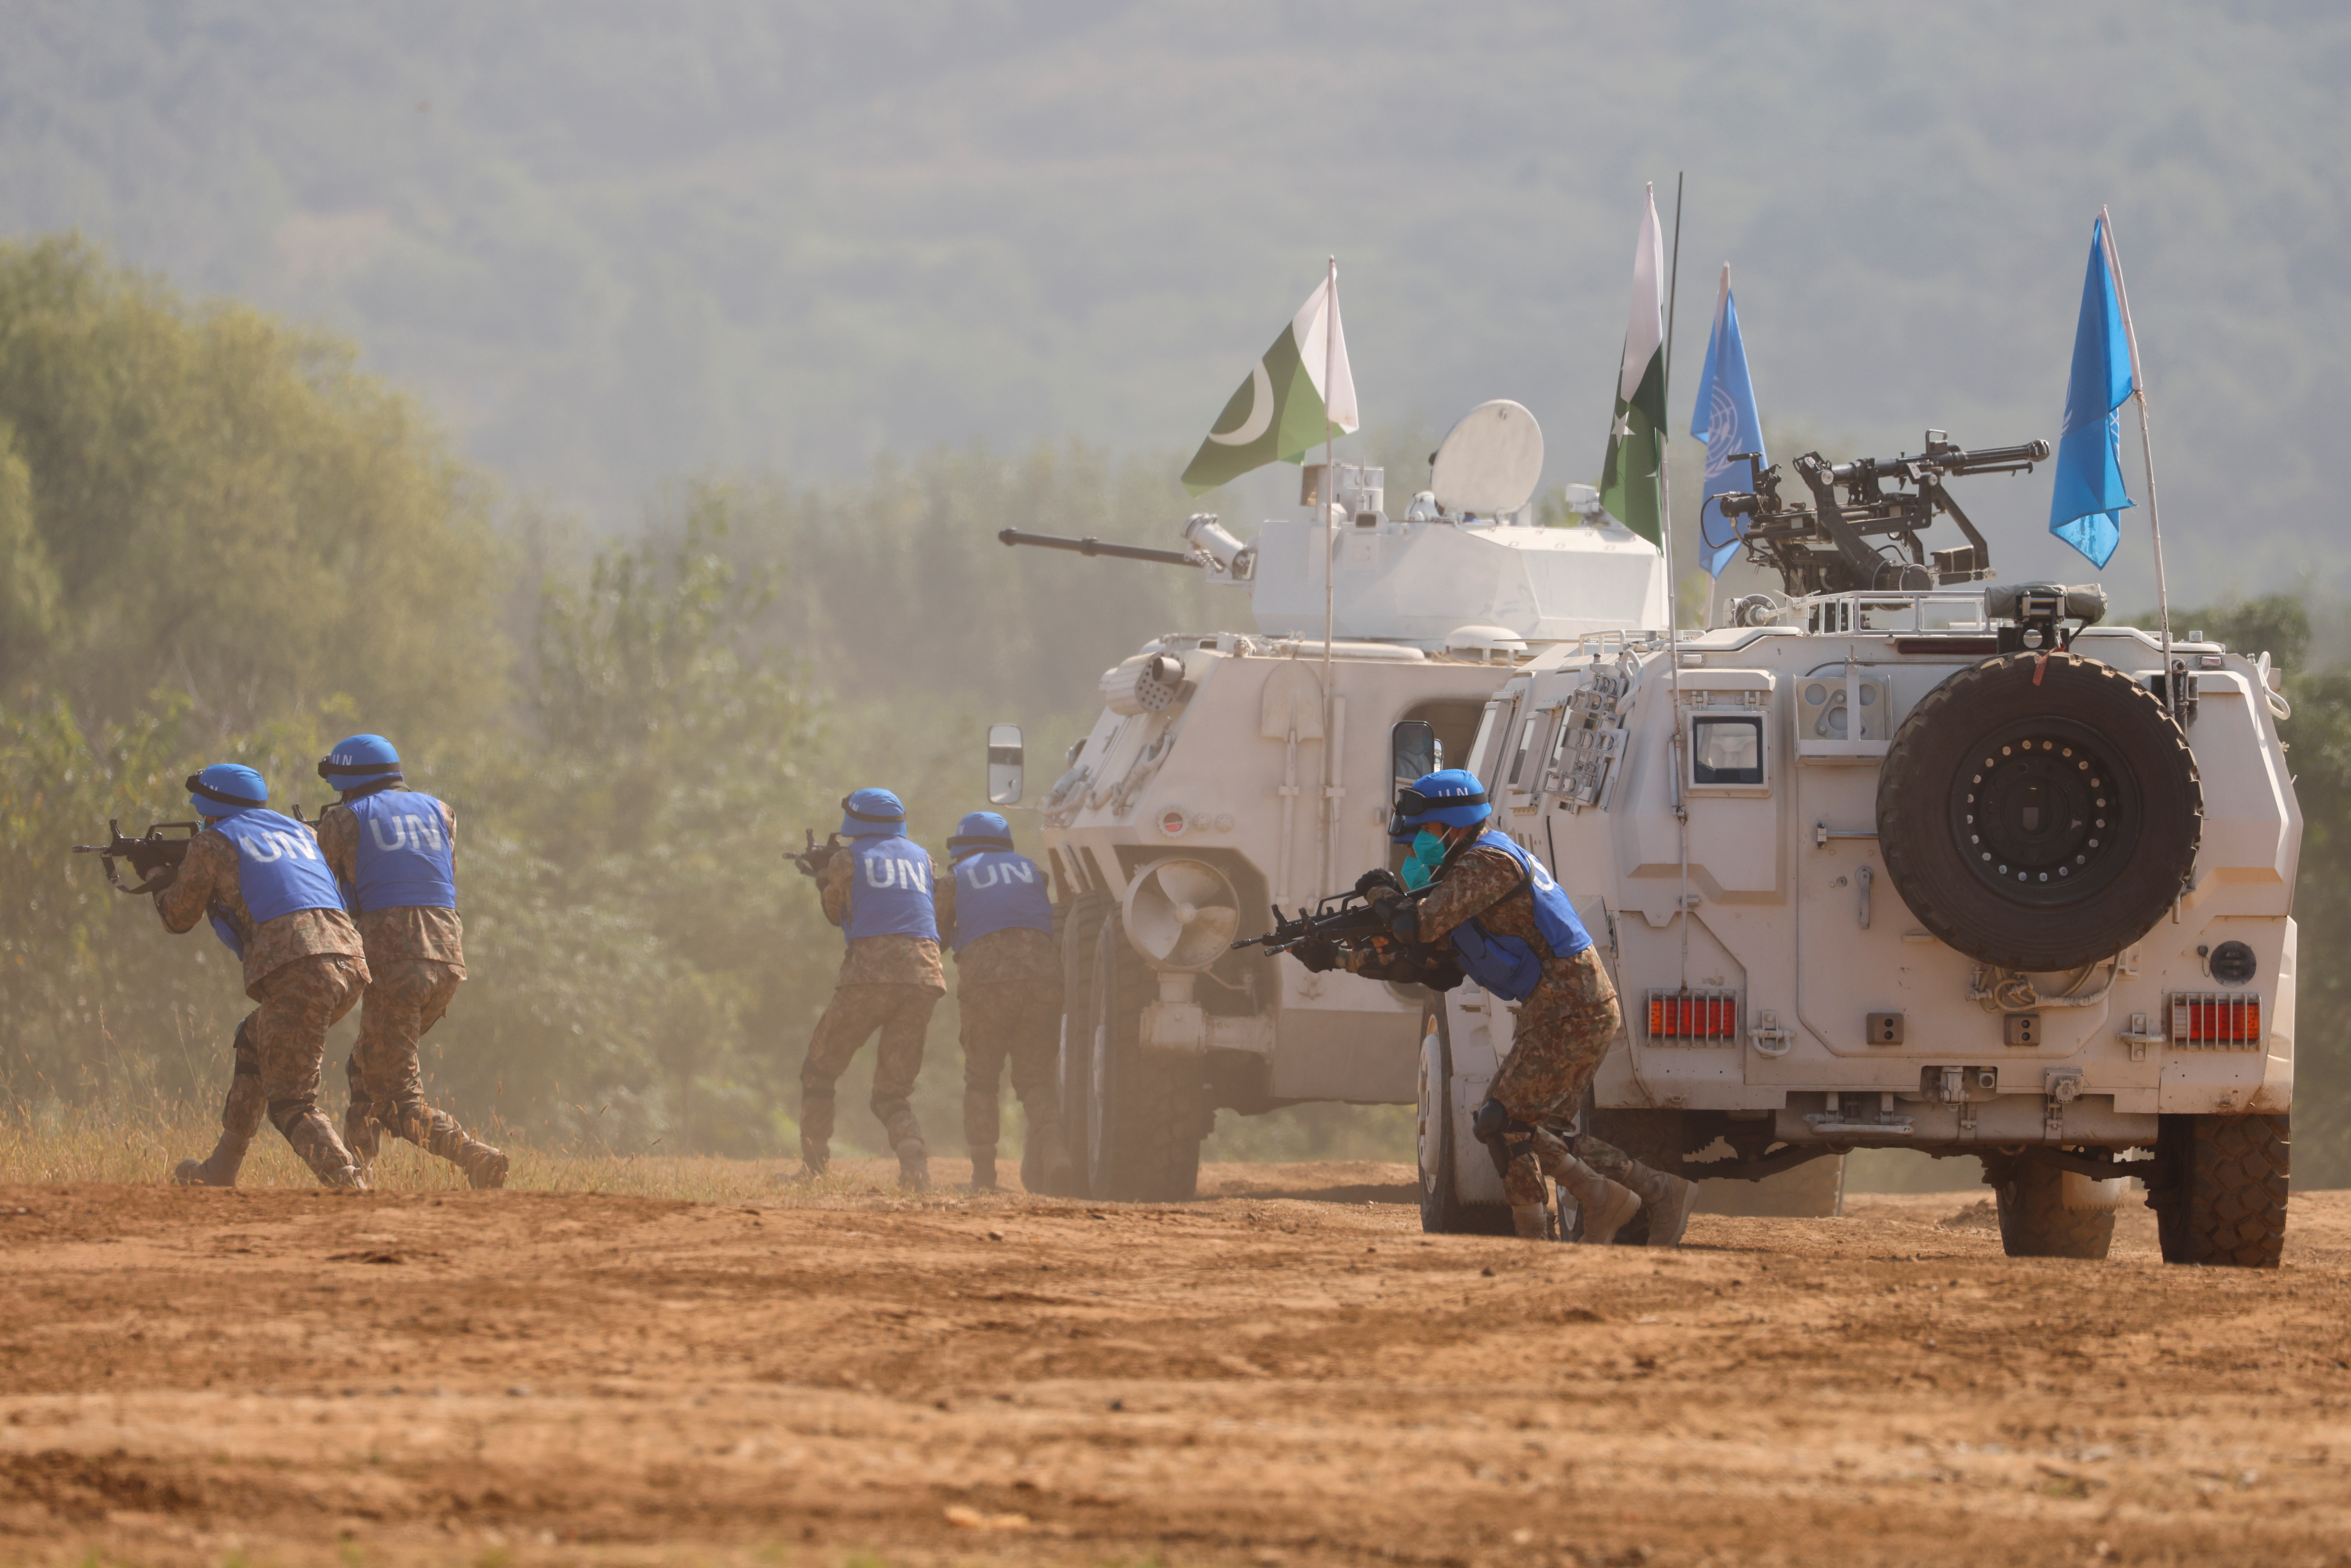 Pakistan soldiers take part in a multinational U.N. peacekeeping military exercise with troops of the Chinese People's Liberation Army (PLA), Mongolia and Thailand, on the outskirts of Zhumadian, Henan province, China September 15, 2021. REUTERS/Carlos Garcia Rawlins